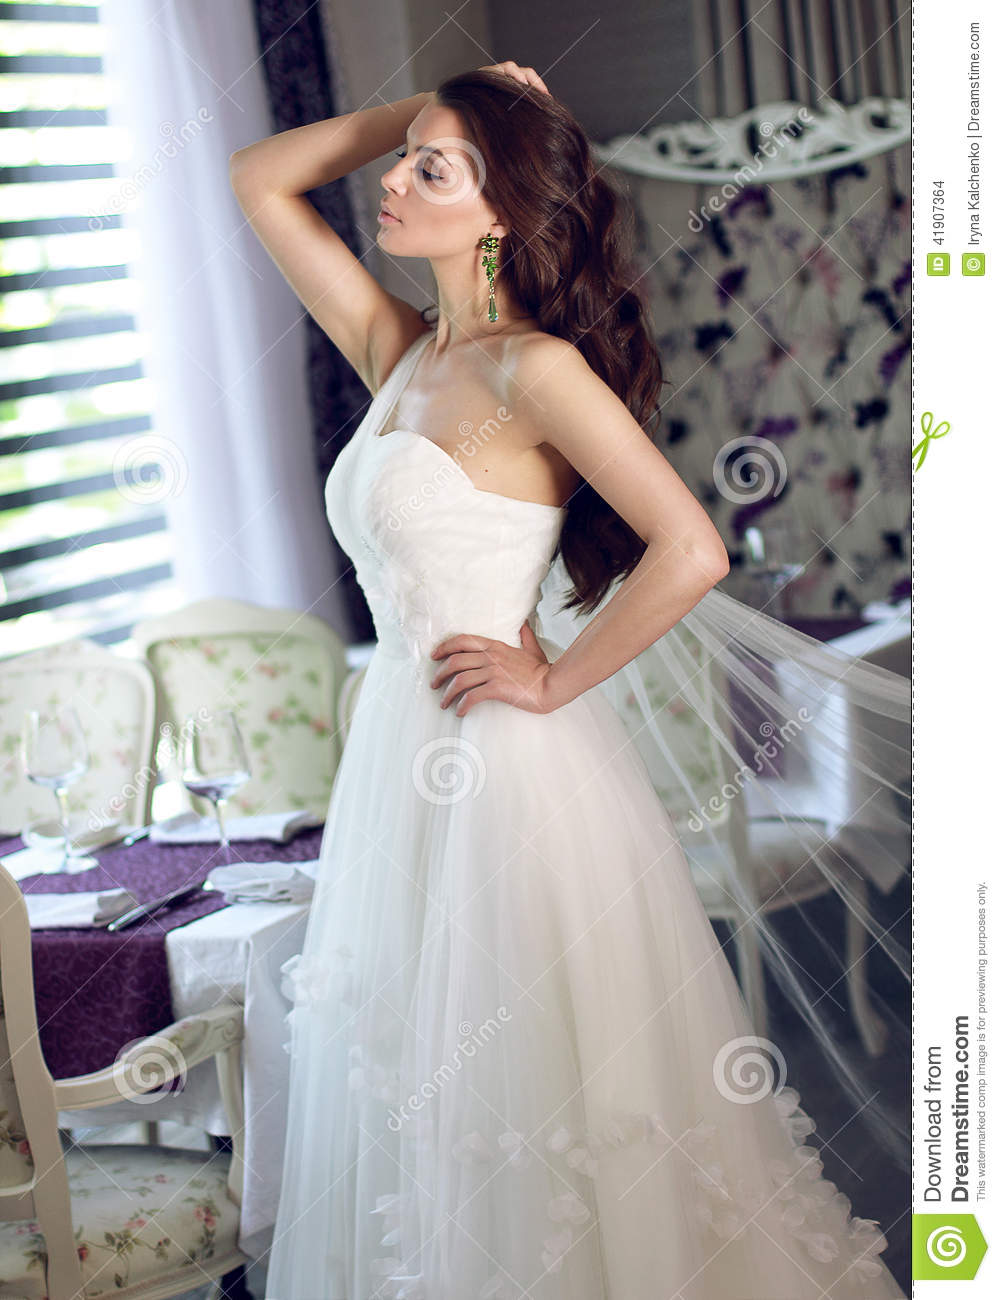 white lace wedding dress all white wedding dress Special Off Shoulder Court Train Short Sleeves Mermaid Lace Wedding Dress with Appliques